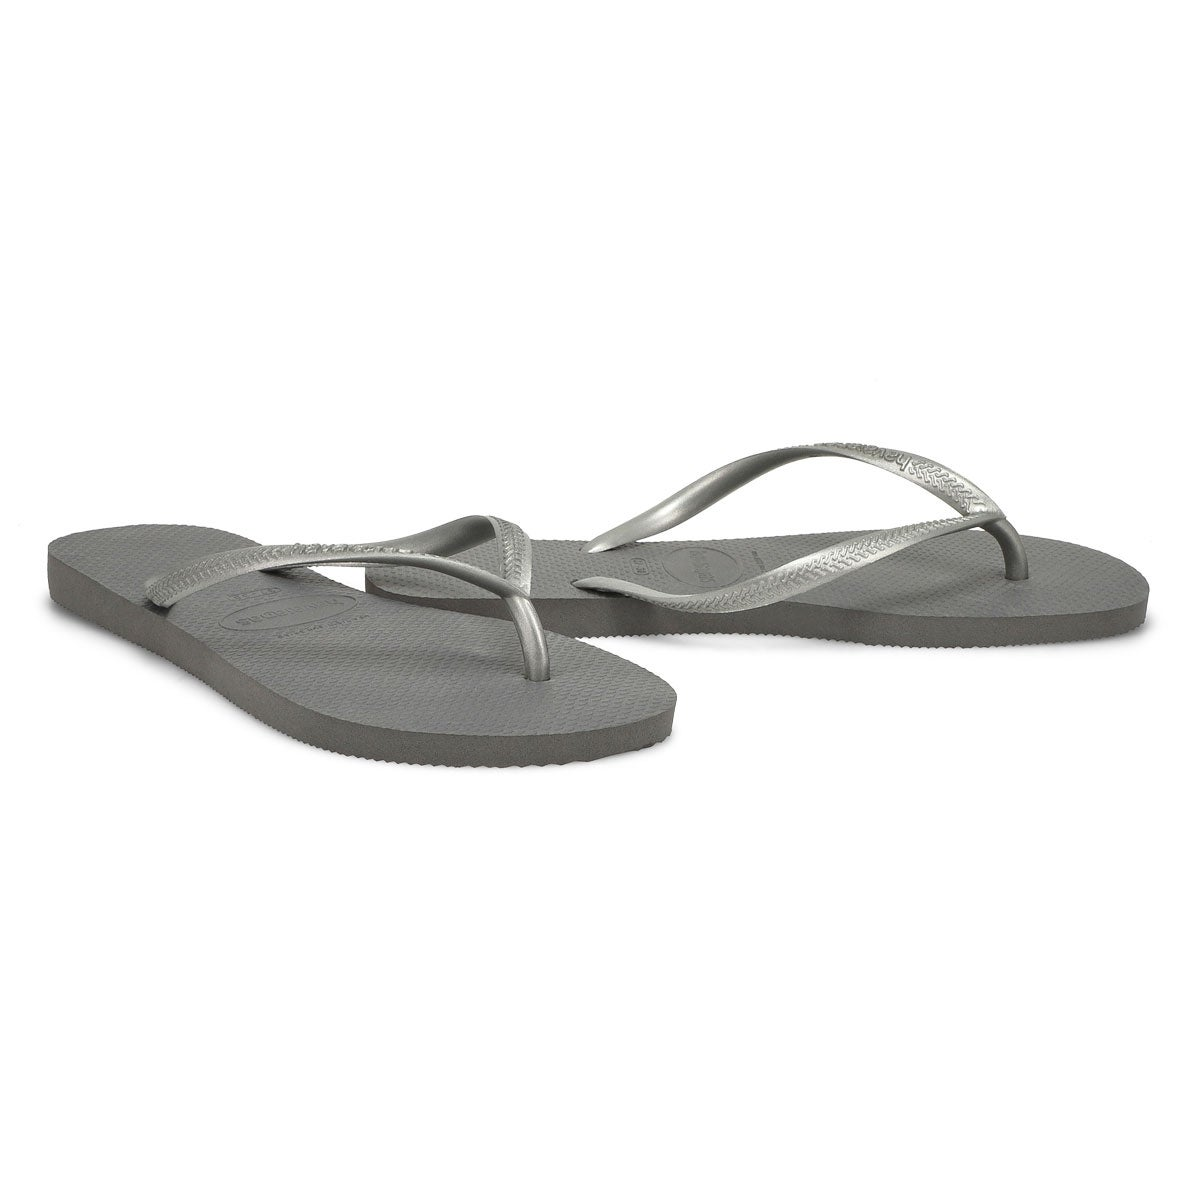 Lds Slim steel grey flip flop